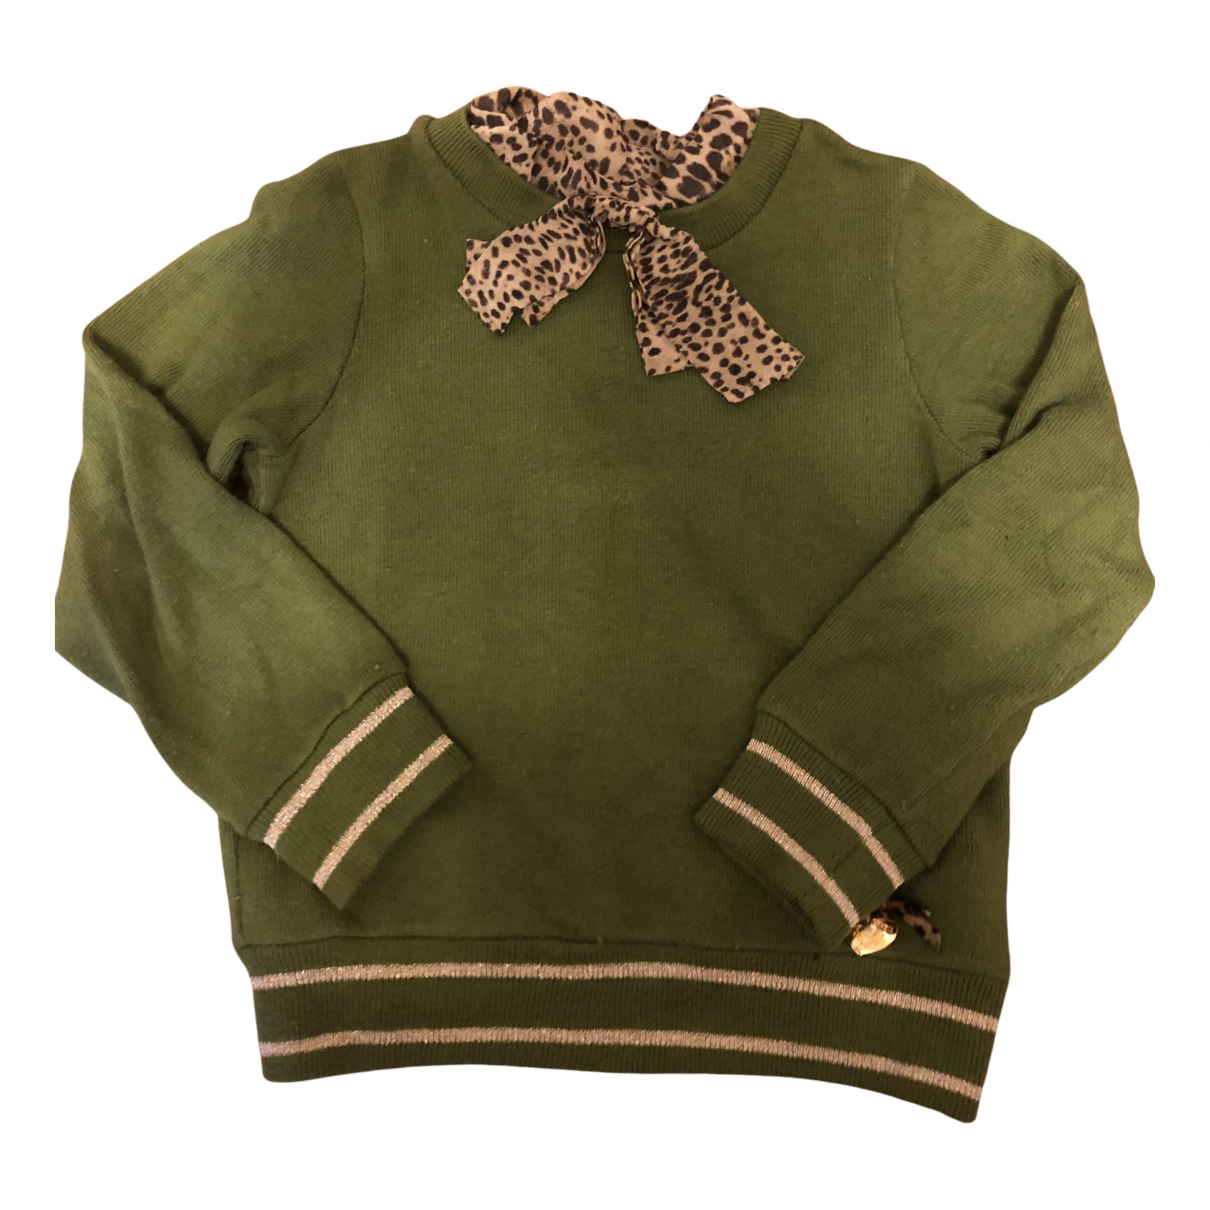 Roberto Cavalli N Green Cotton Knitwear for Kids 3 years - up to 98cm FR